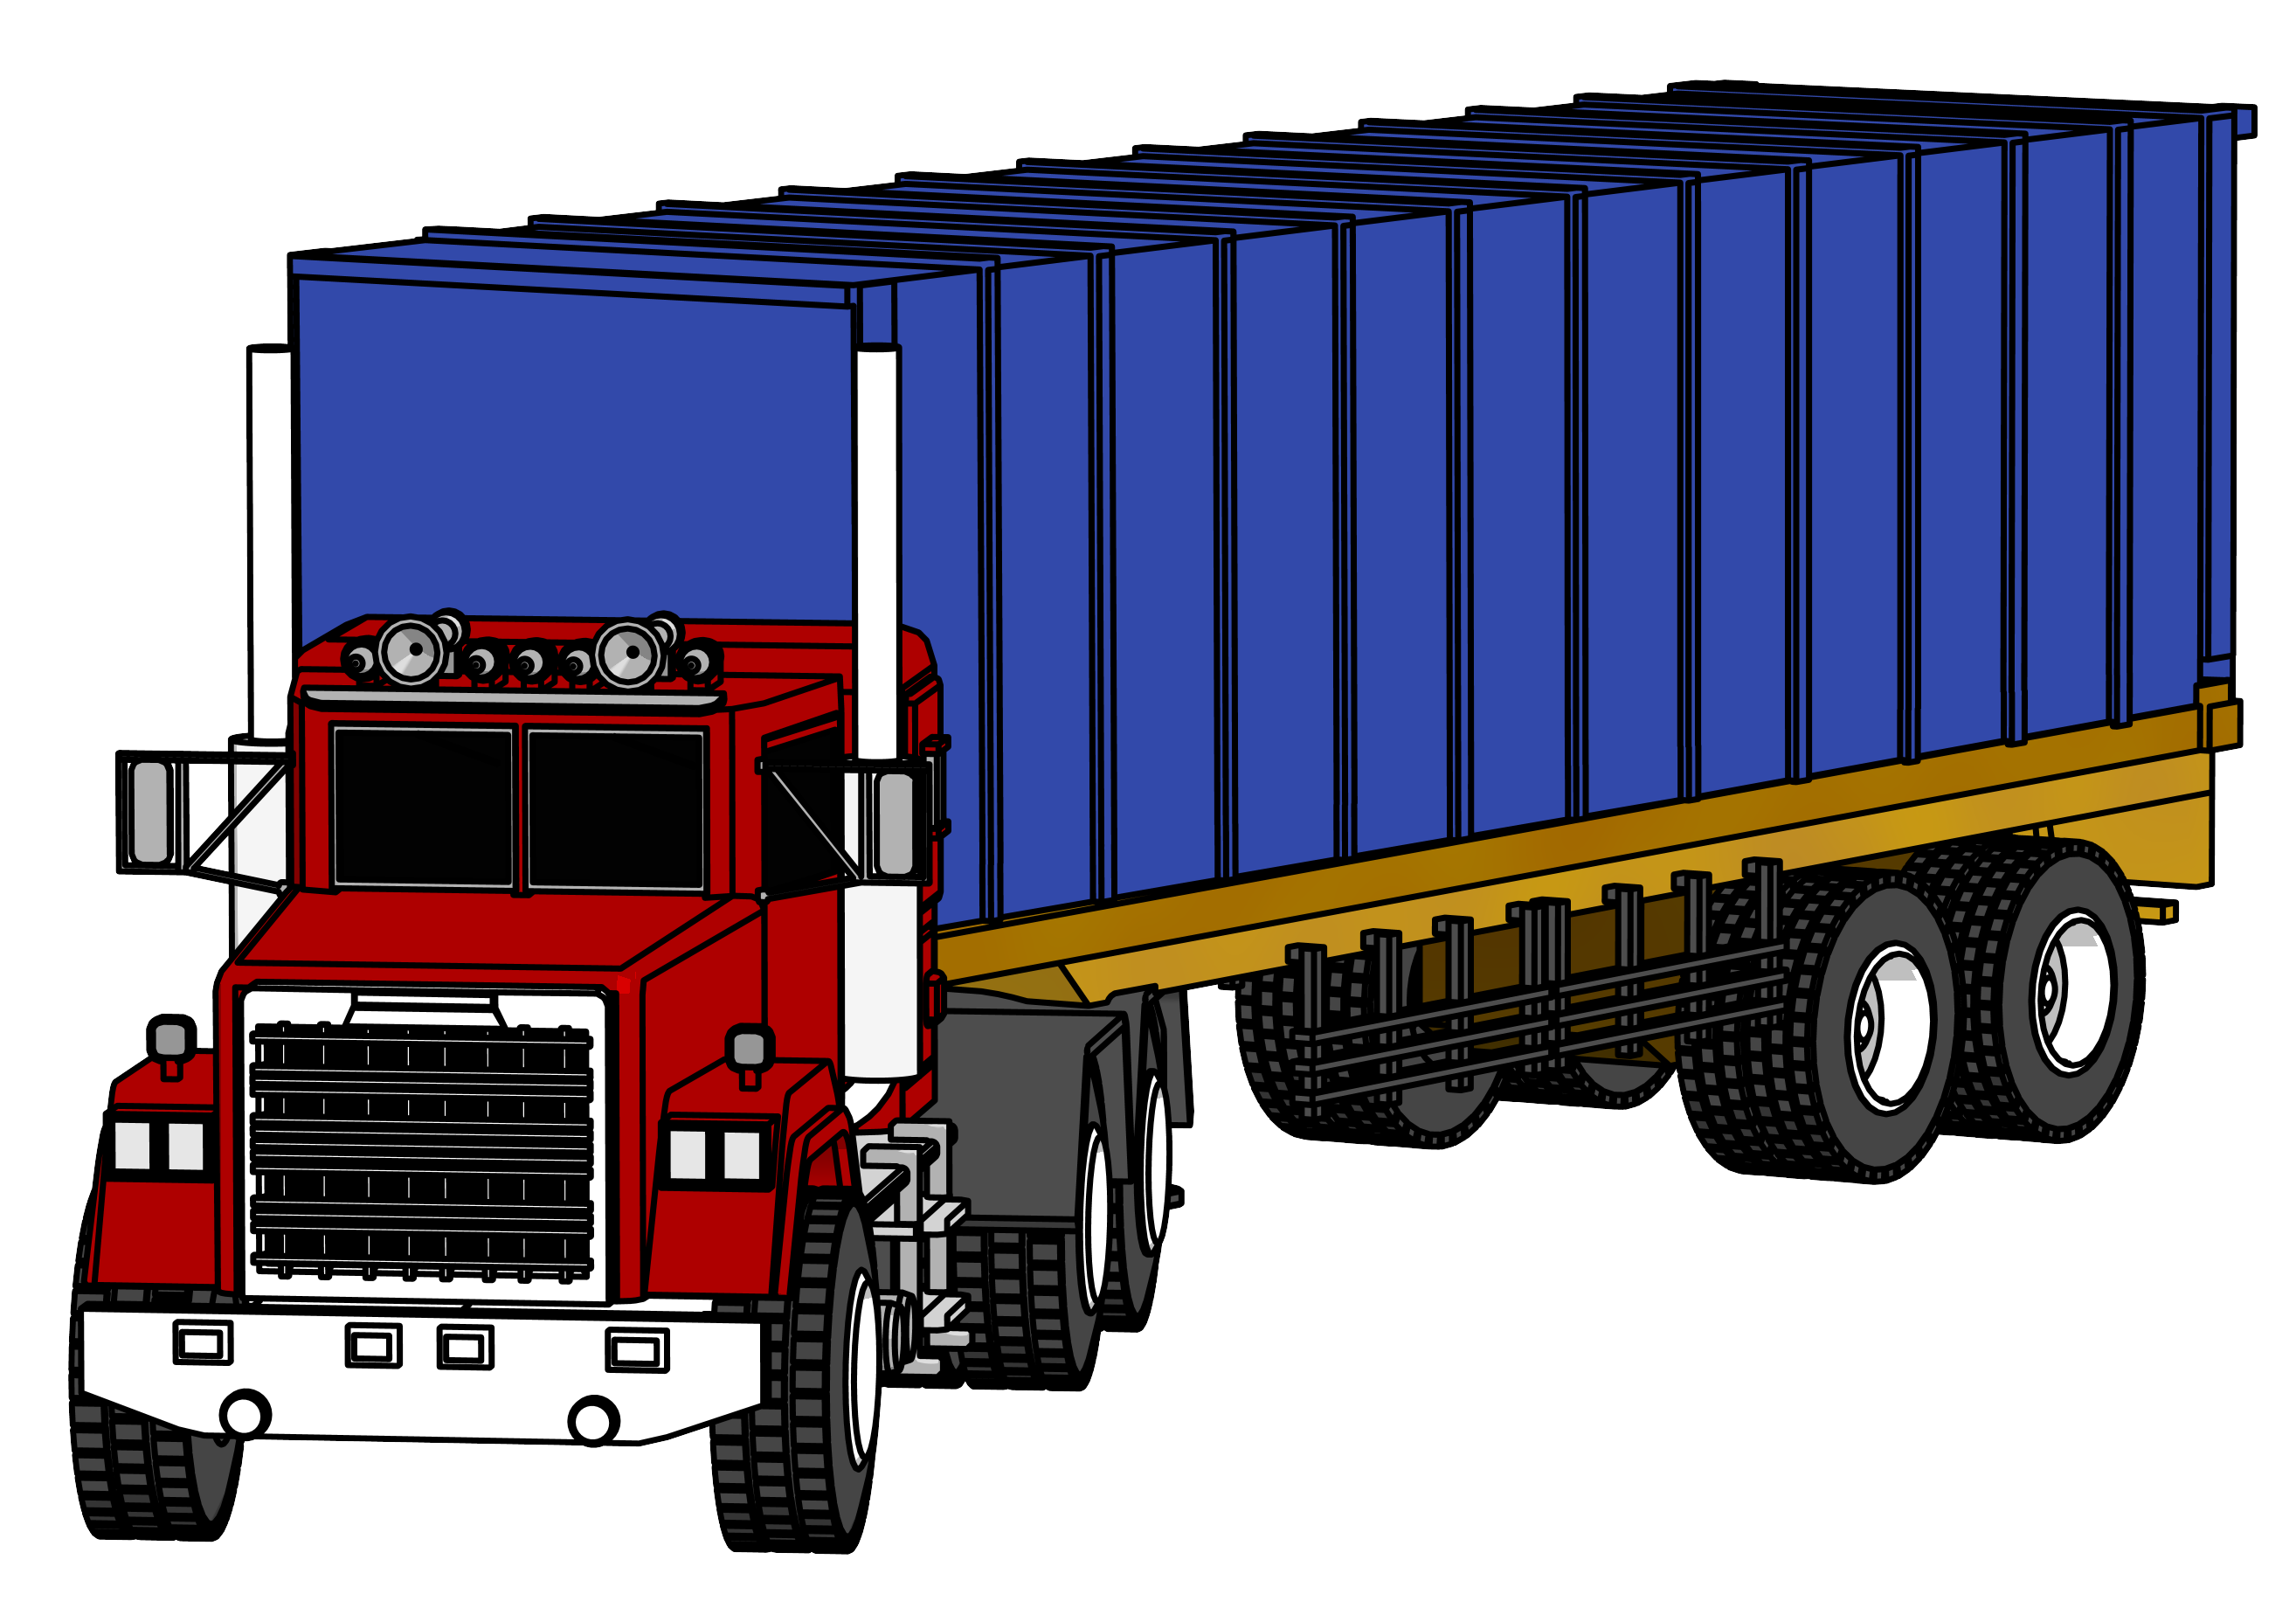 Clean clipart industrial. Truck big png image